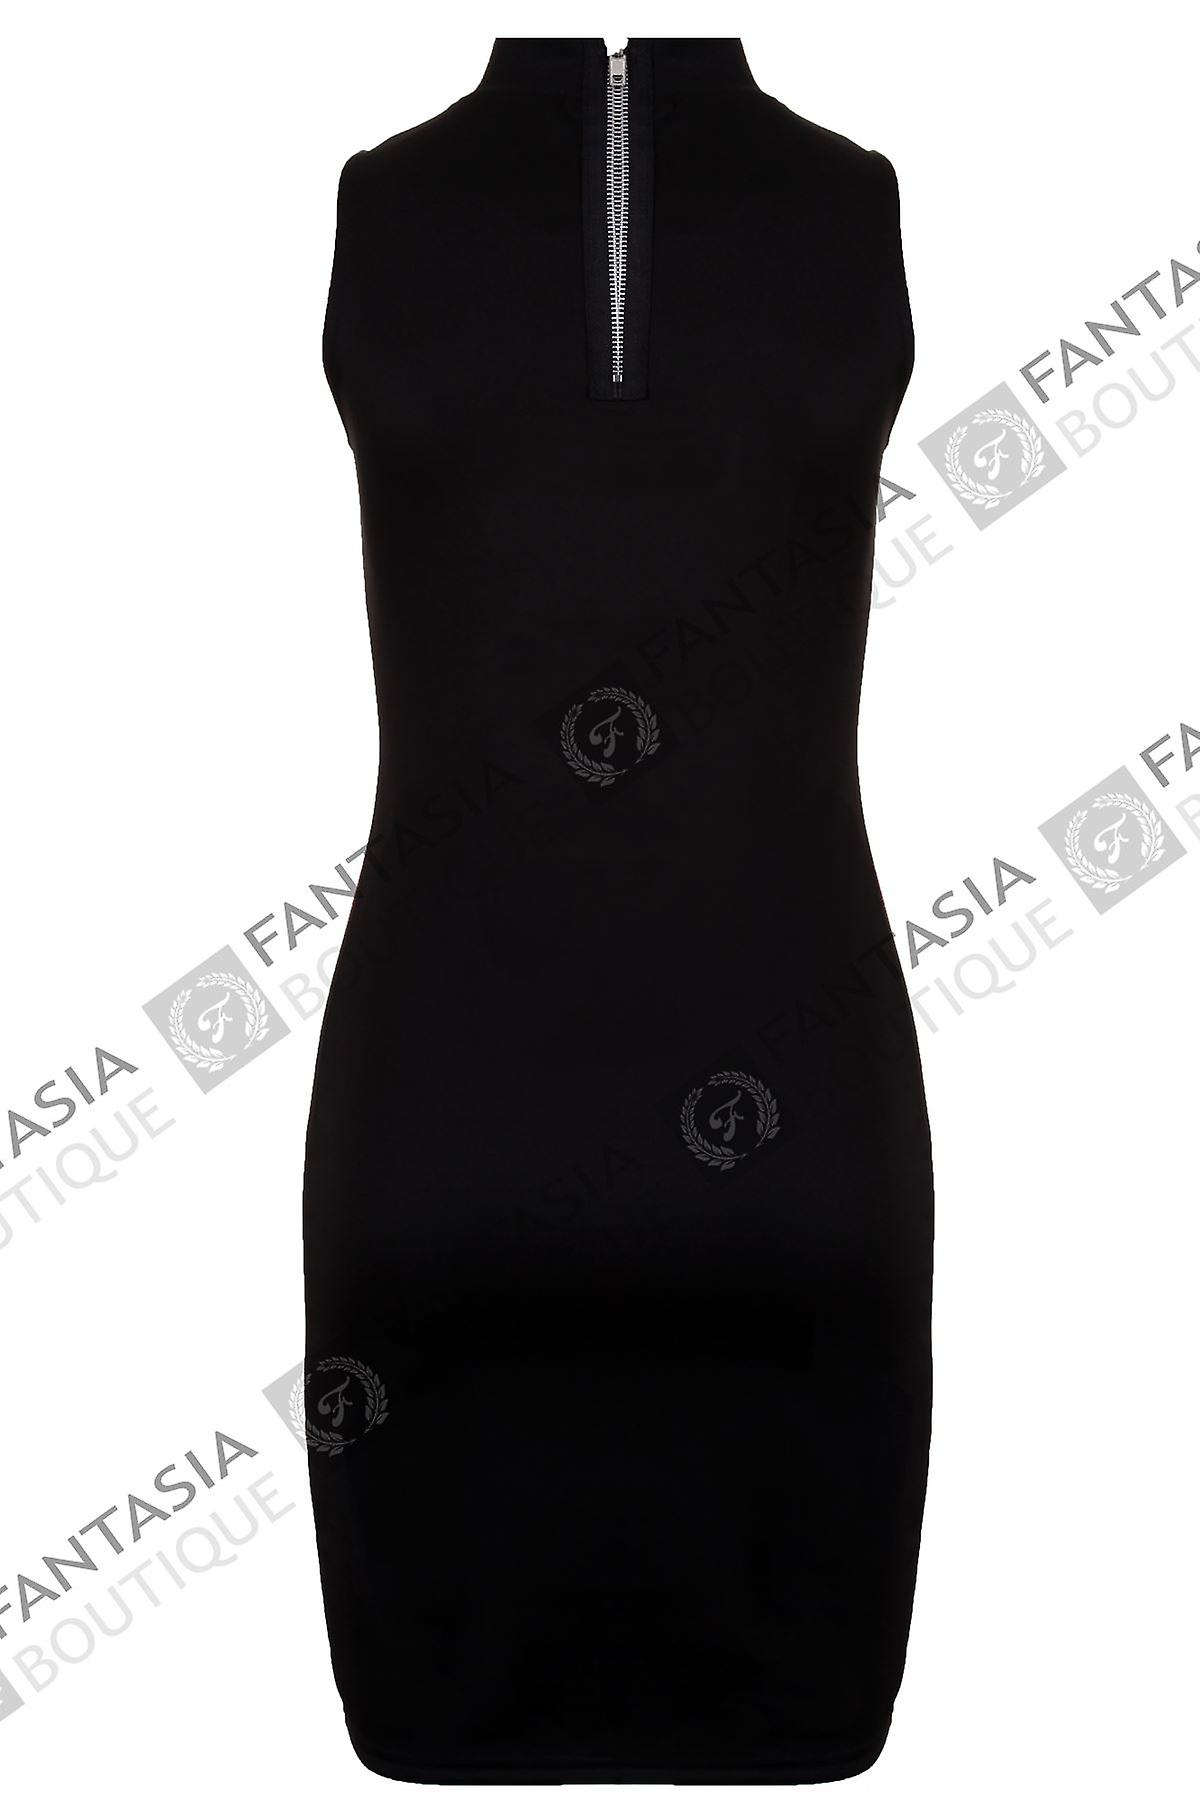 Ladies Diamonte Mesh Polo Neck Contrast Bodycon Women's Short Dress